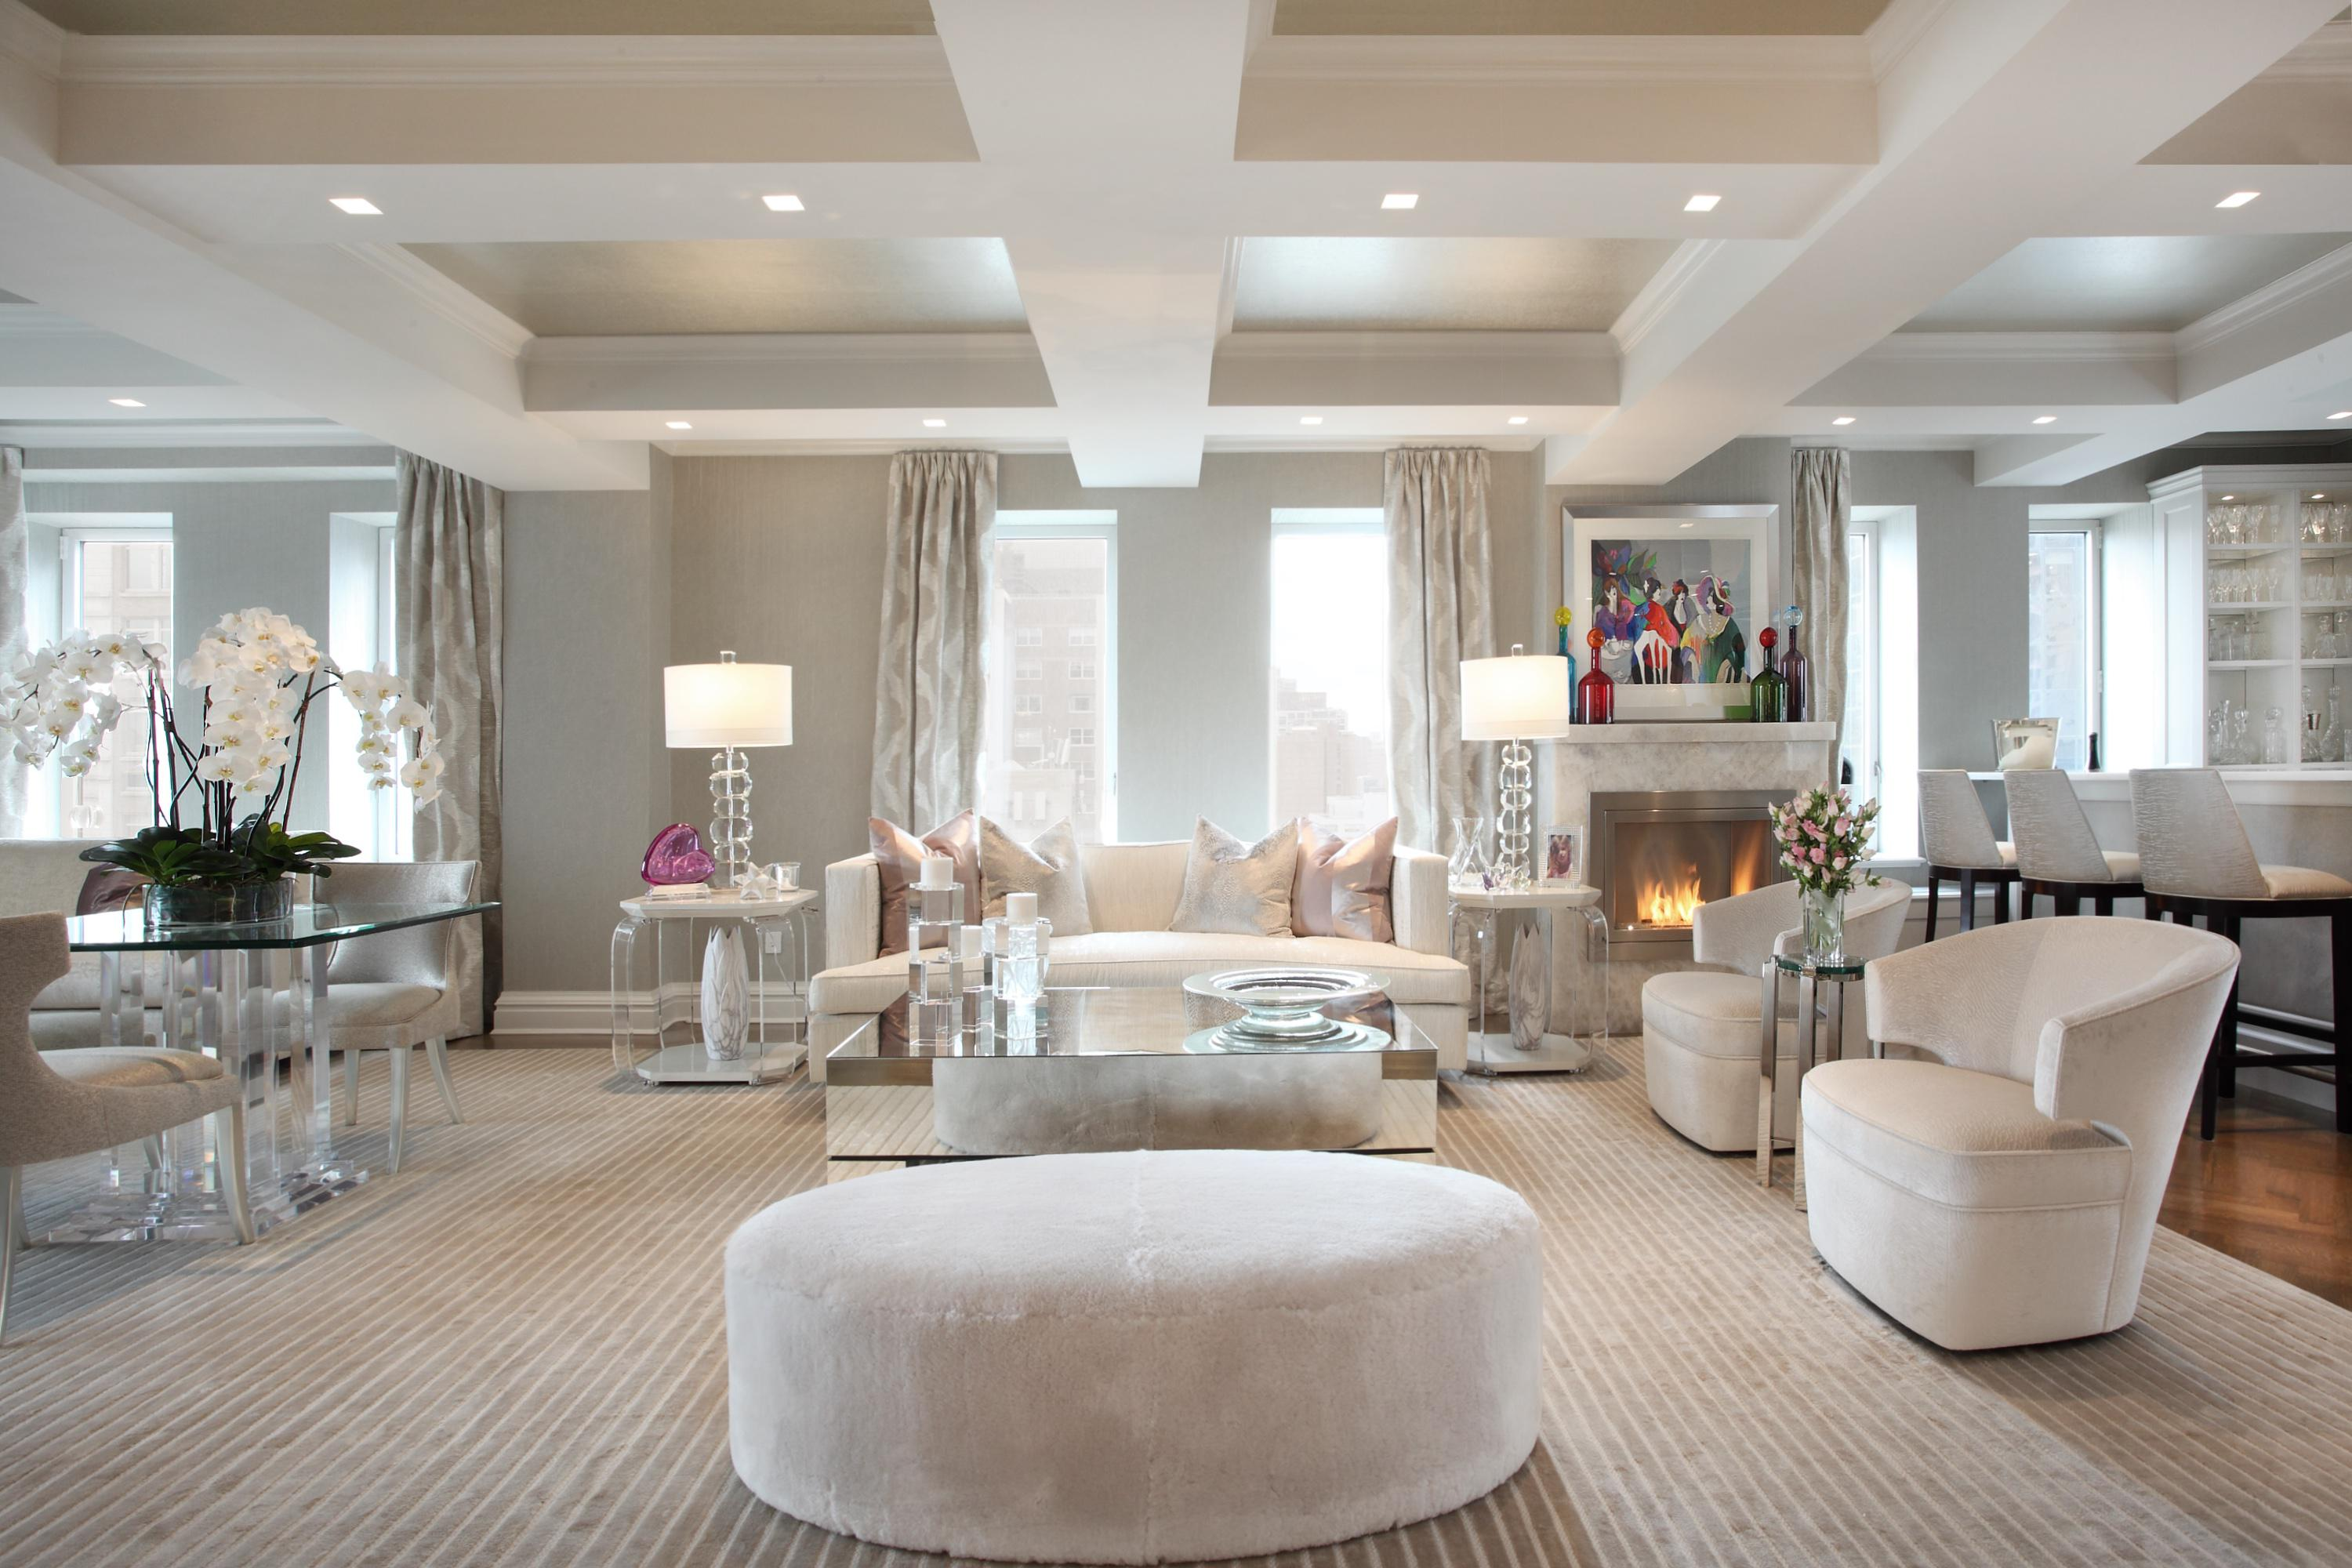 Luxurious apartment penthouse designs inspiration dering hall